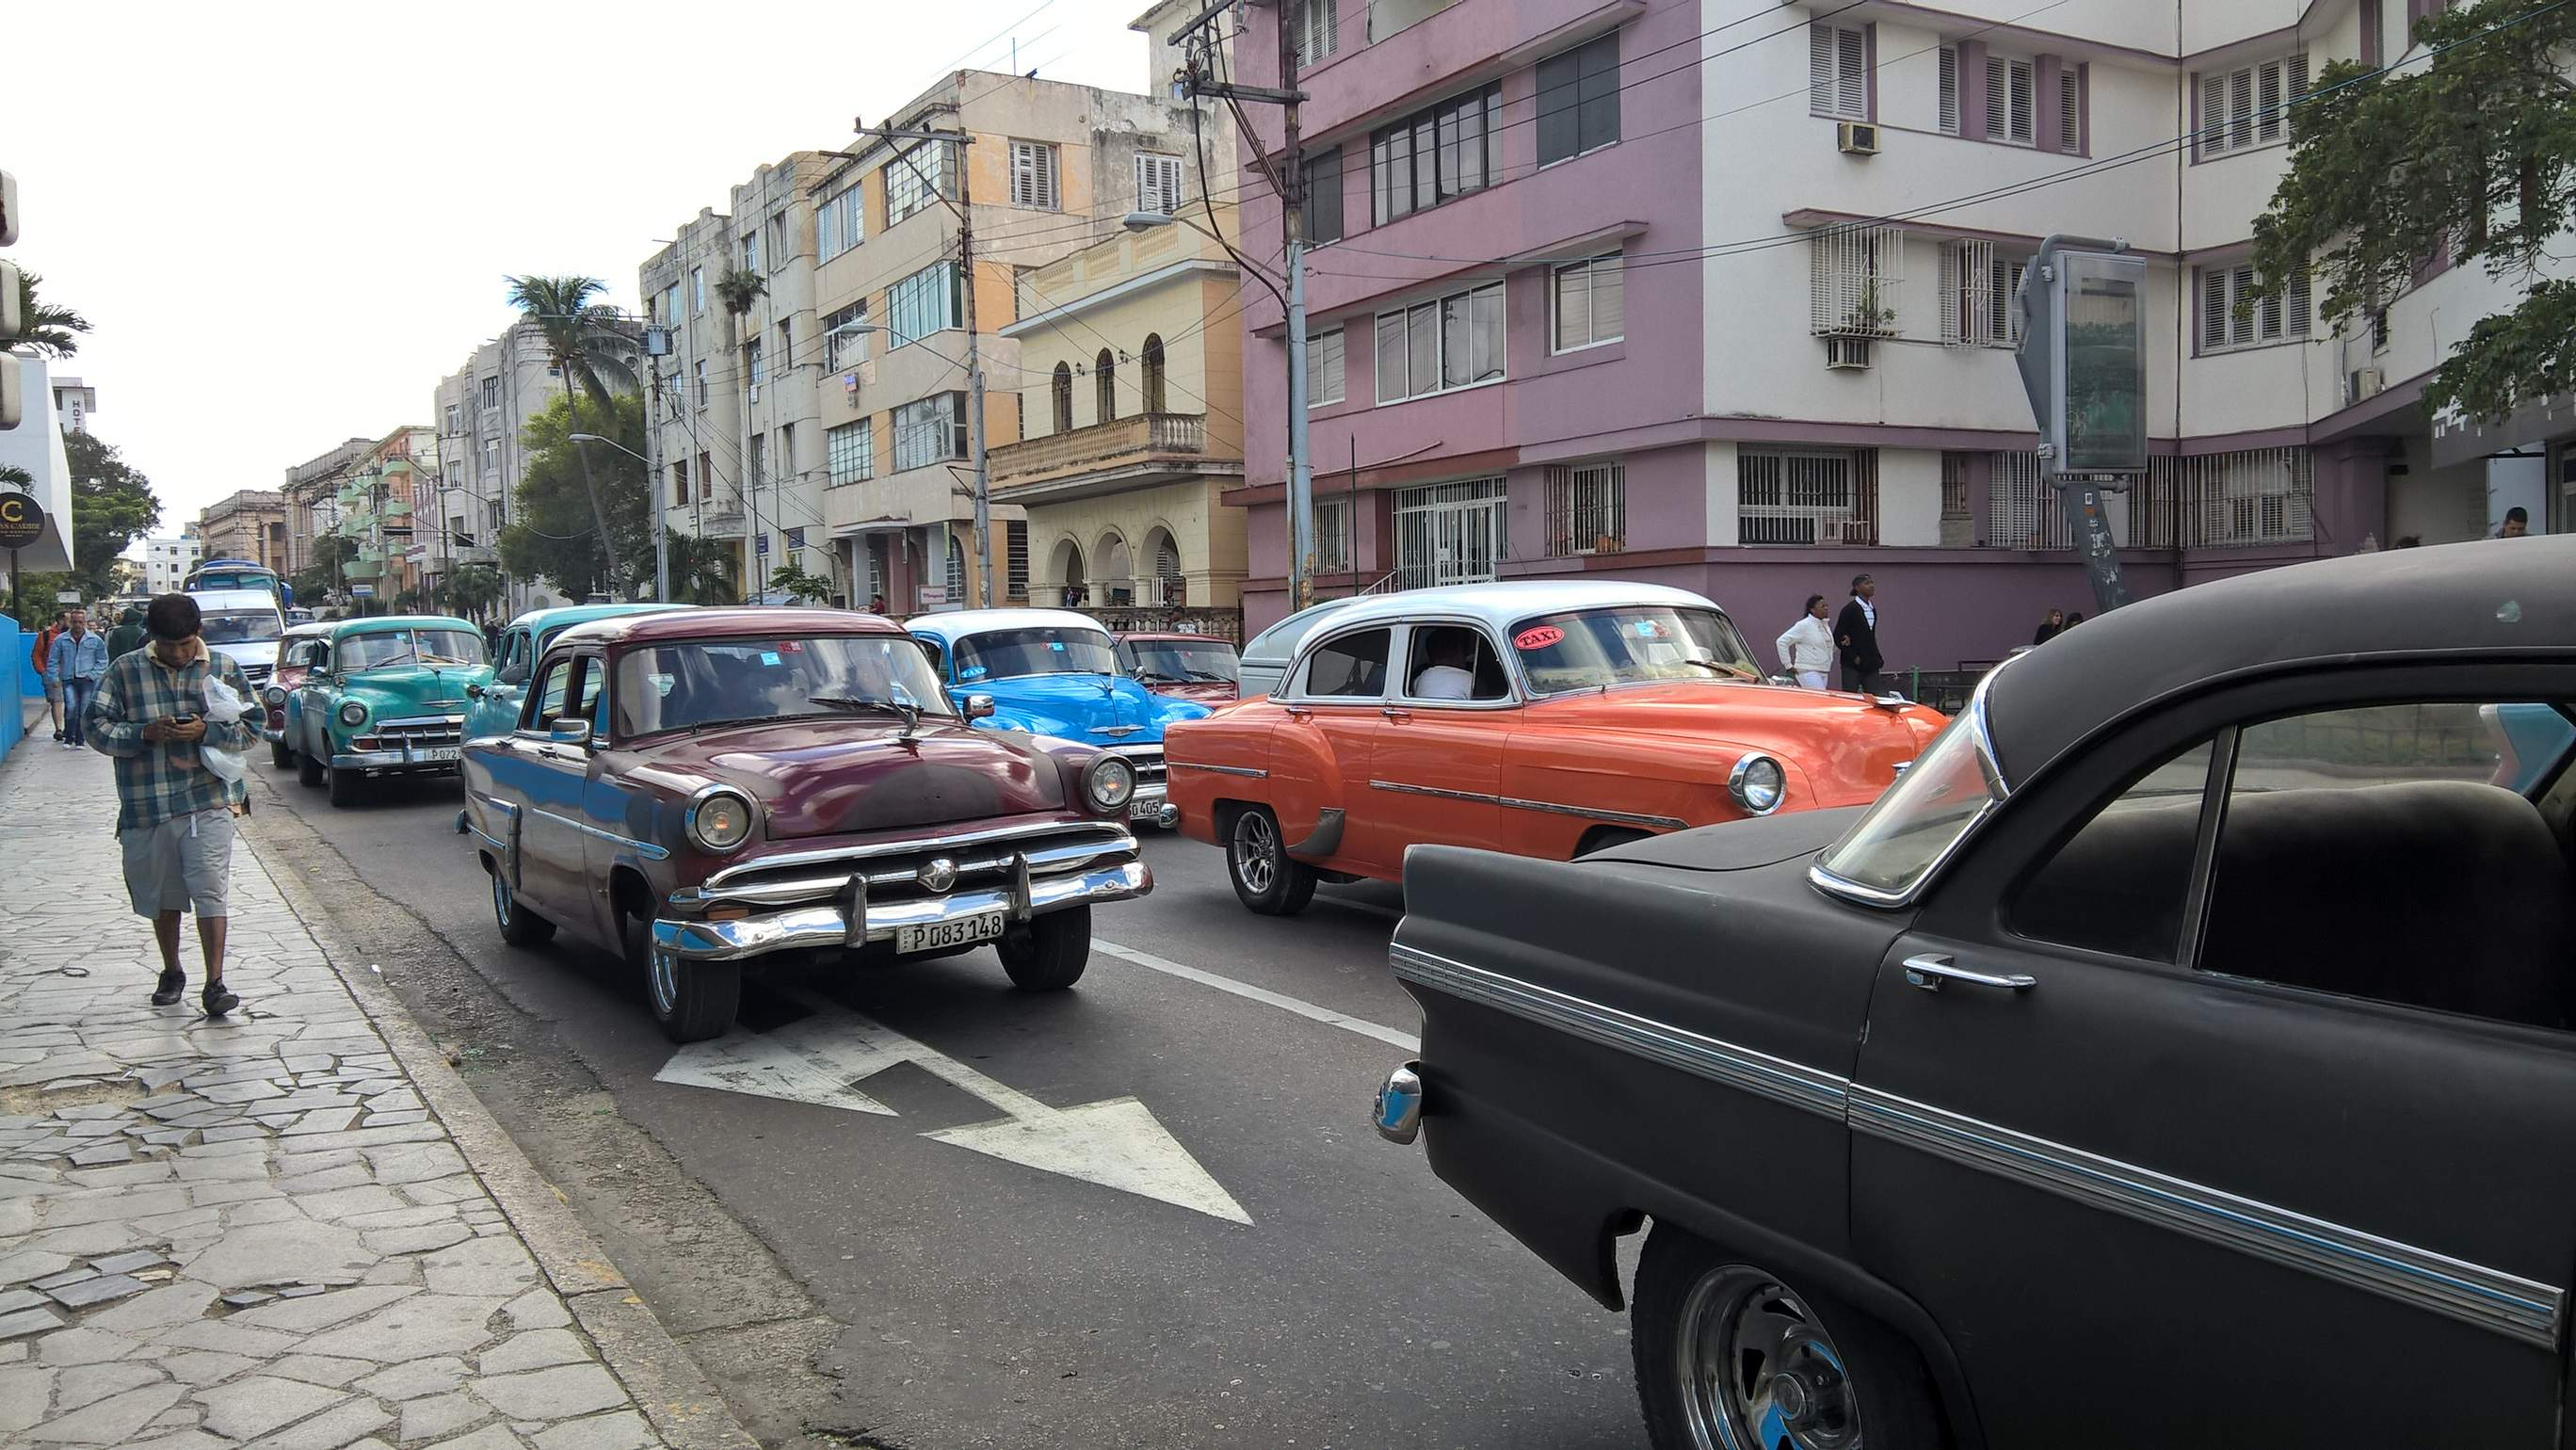 Several Almendrones Pre Revolutionary Cars As Taxis Can Be Seen Here In Havana